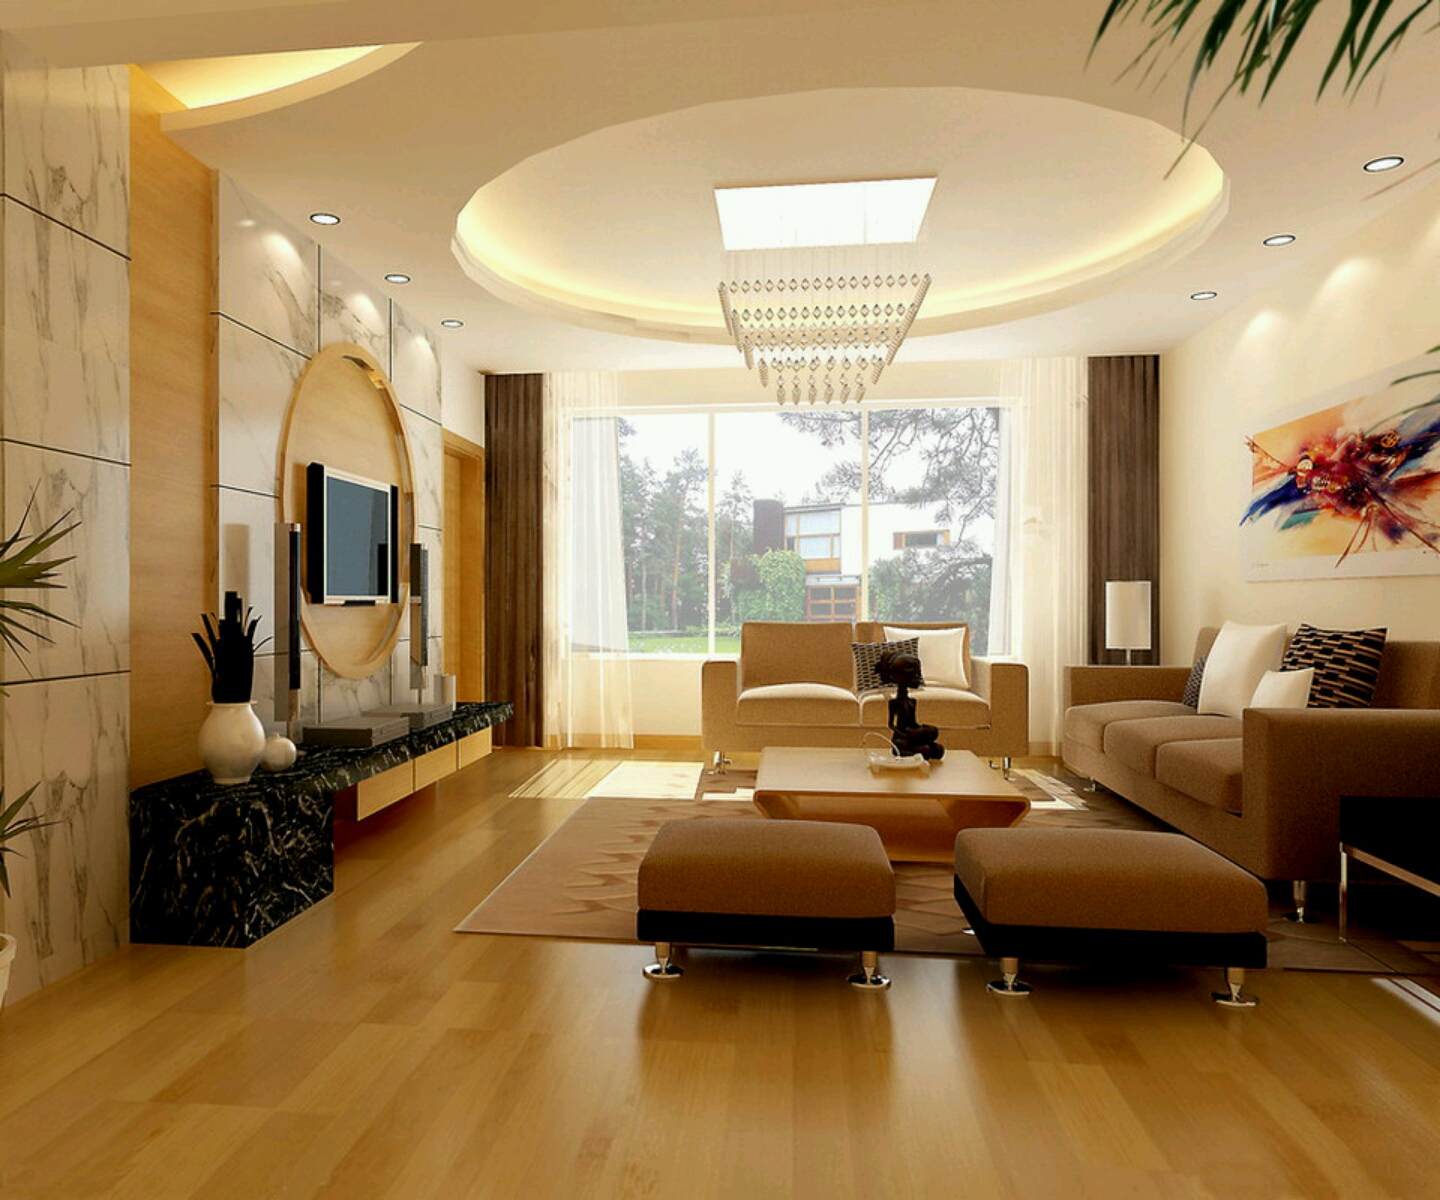 Modern interior decoration living rooms ceiling designs for New living room ideas